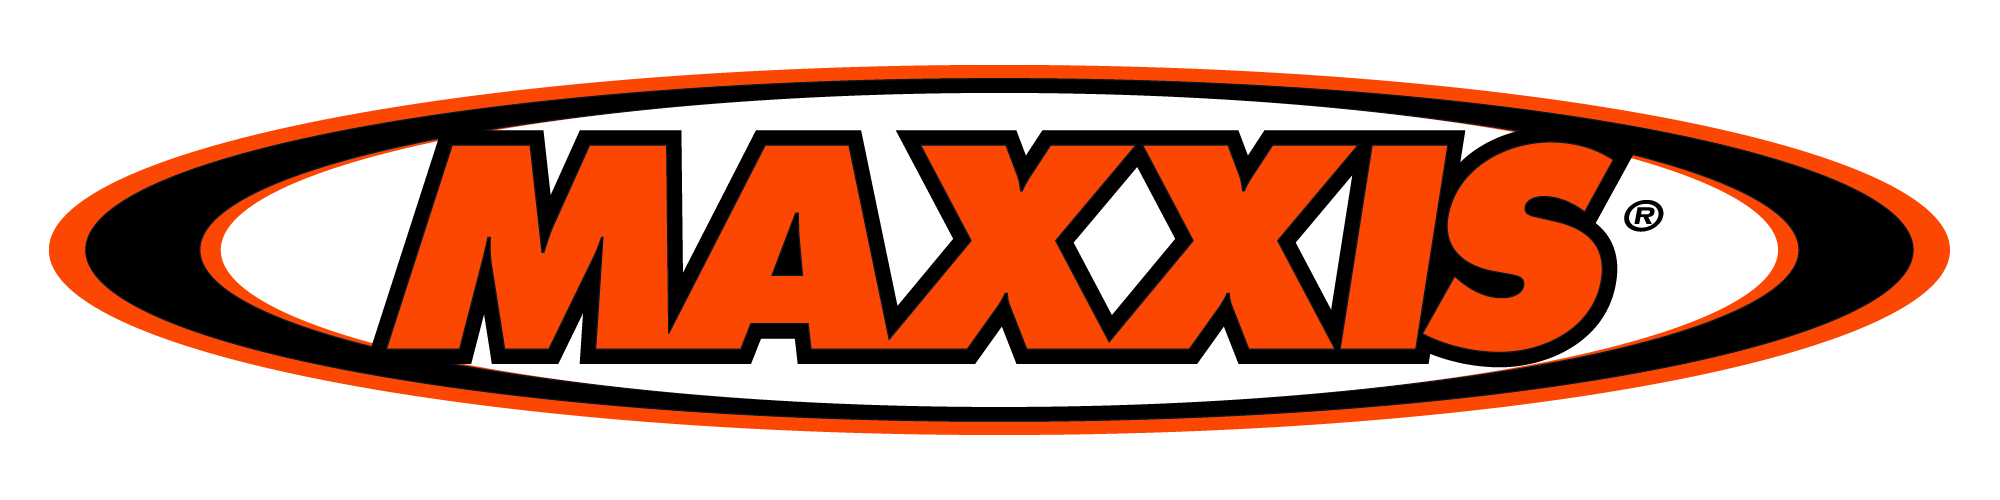 Image result for maxxis logo